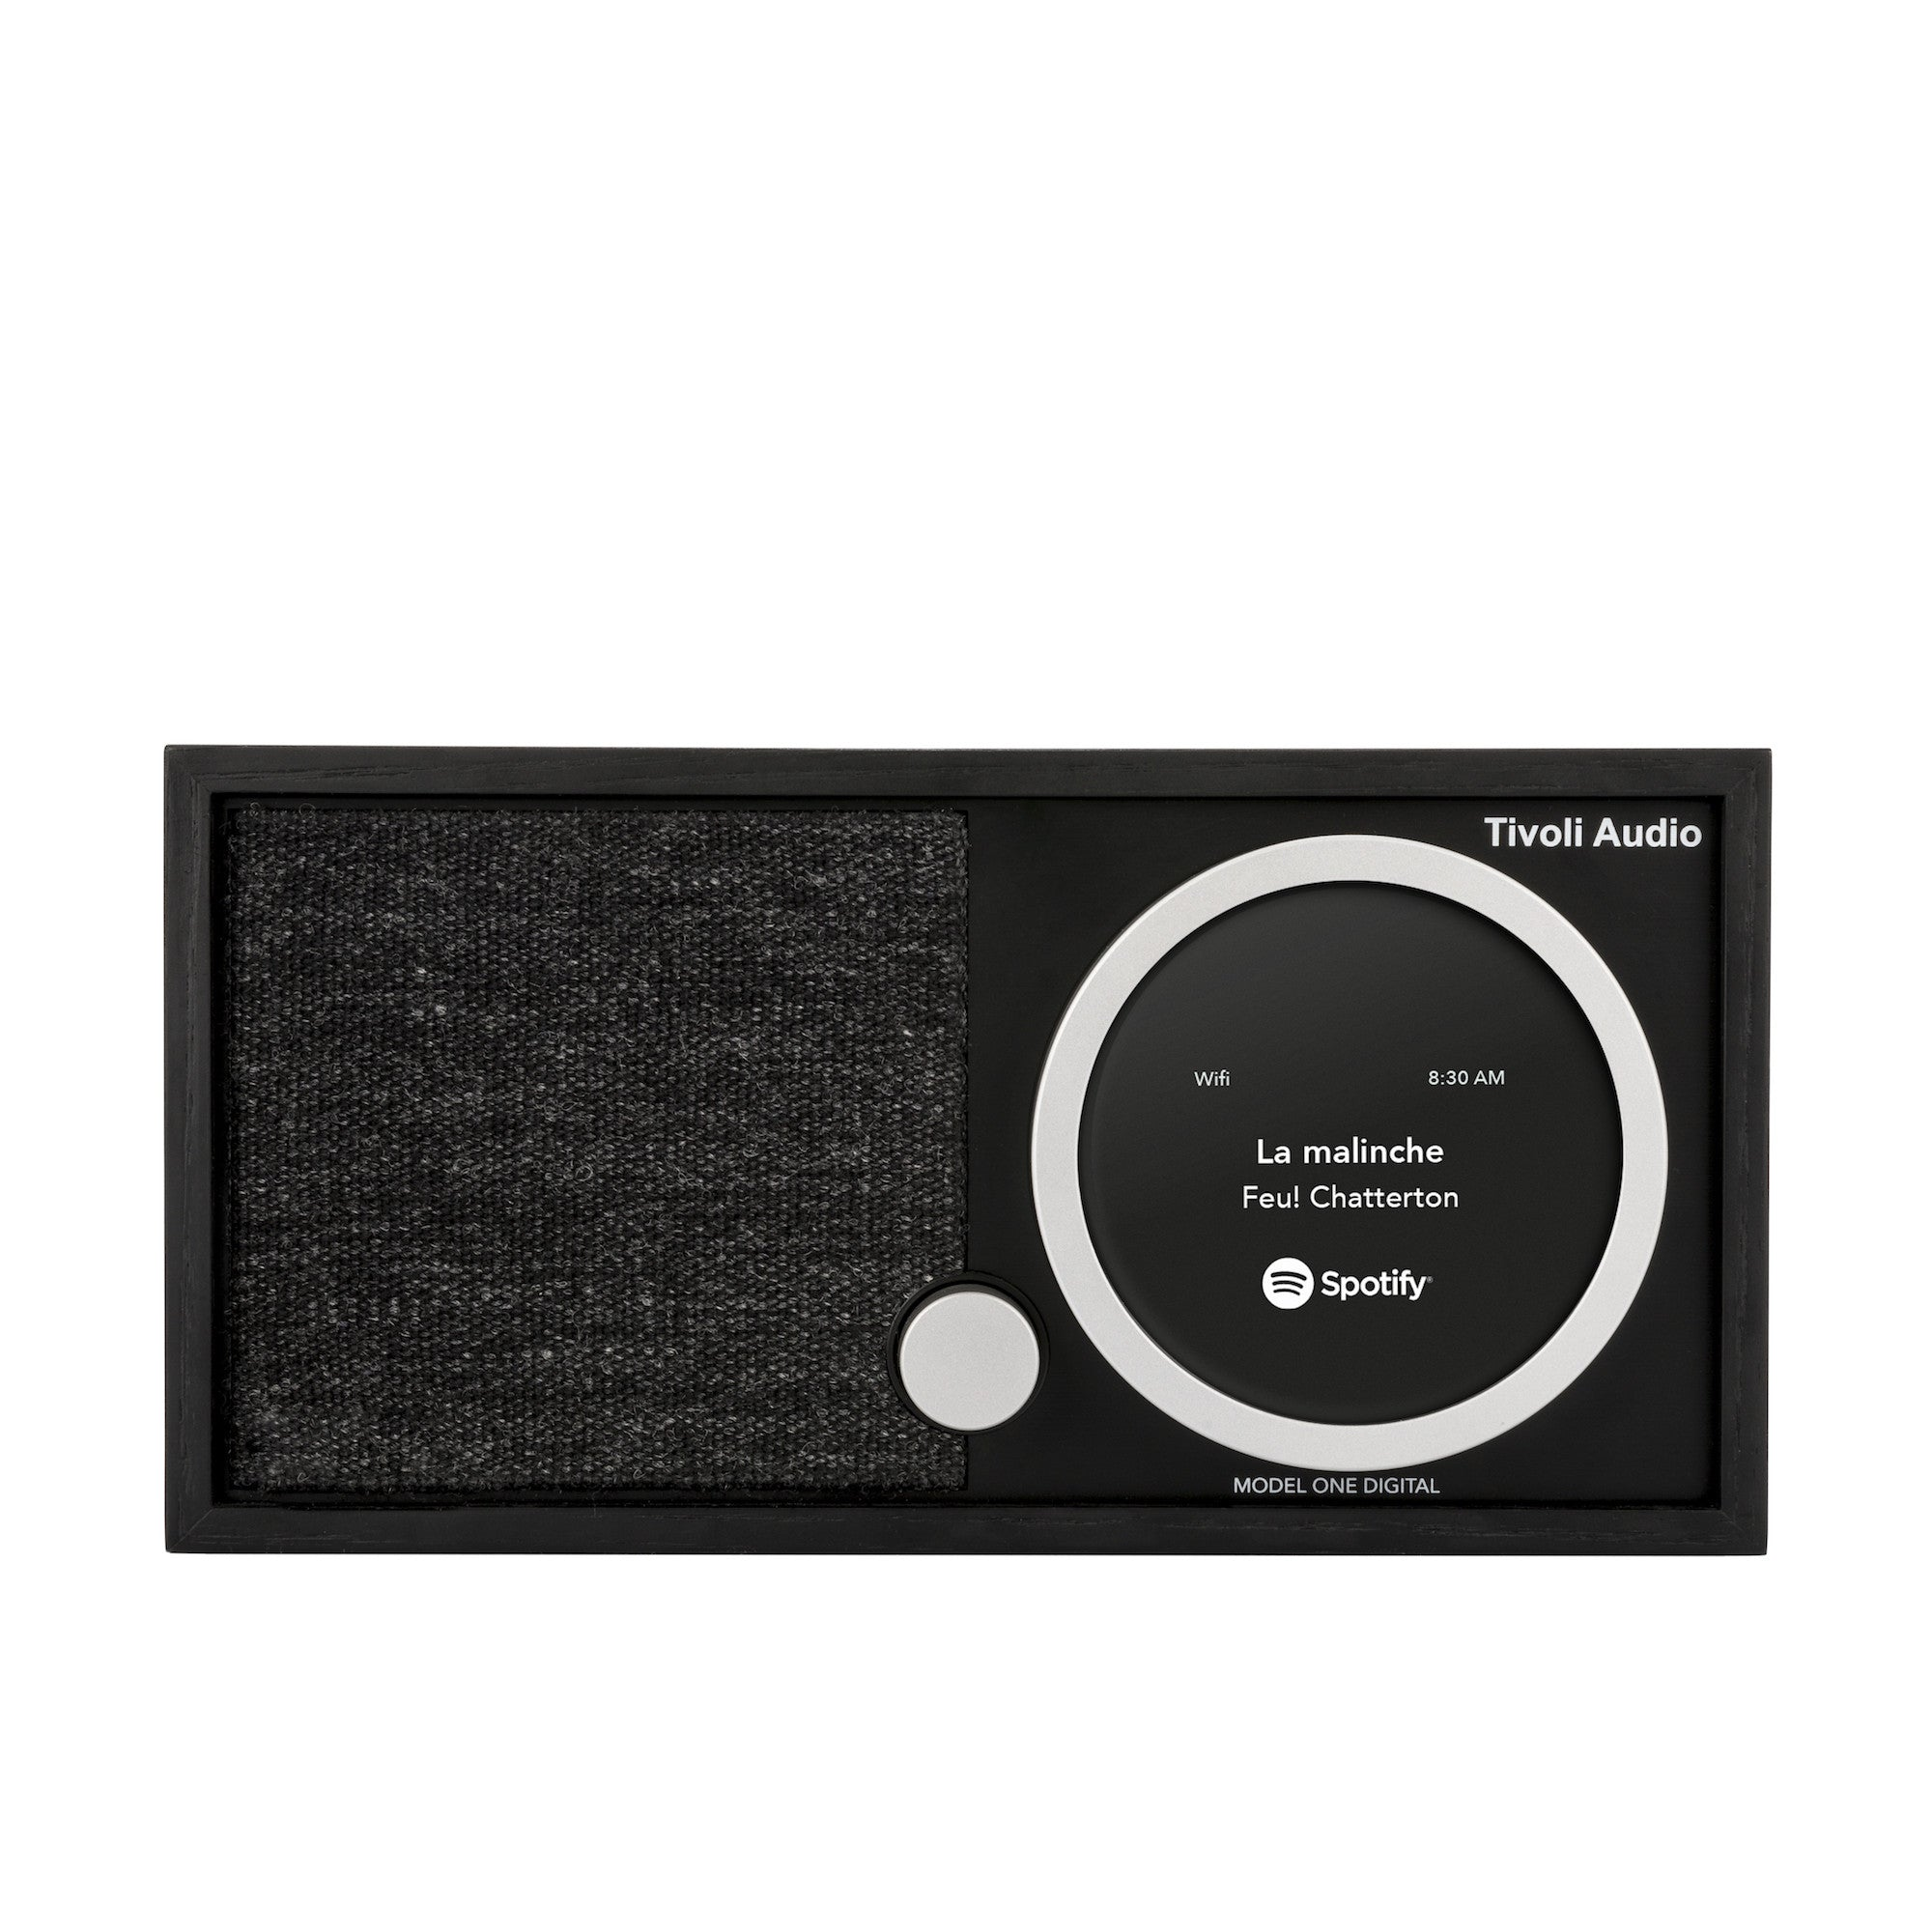 Tivoli Model One Digital - Table Radio - NZ Stockist - Wifi Capable - Bluetooth - FM/AM Radio